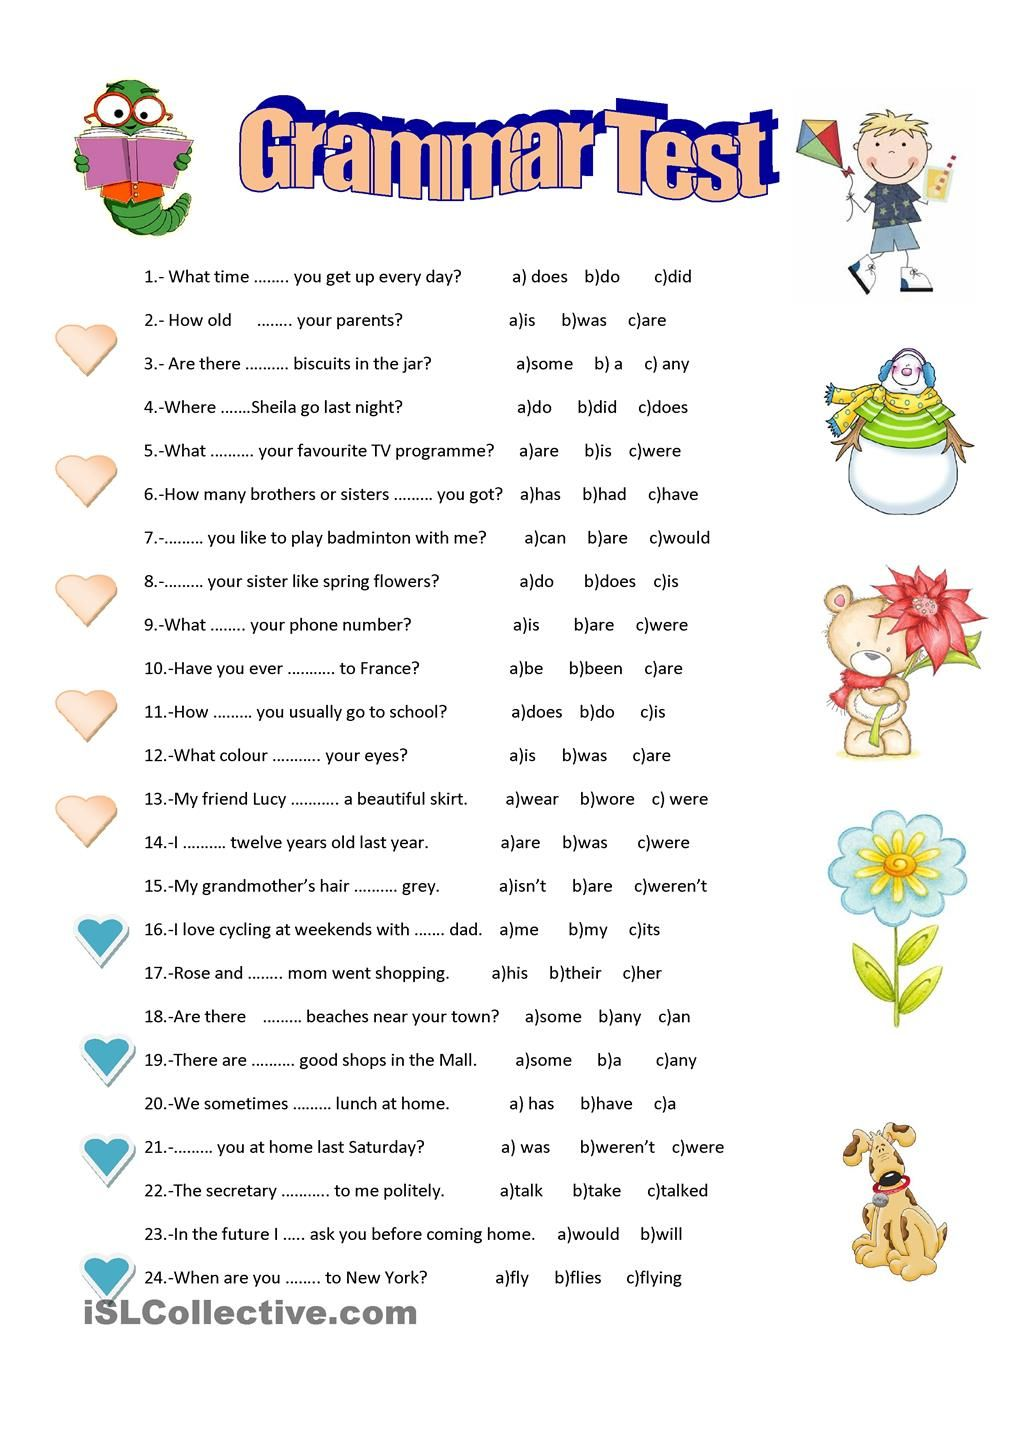 Grammar test | Enkku | Grammar,English grammar worksheets ...